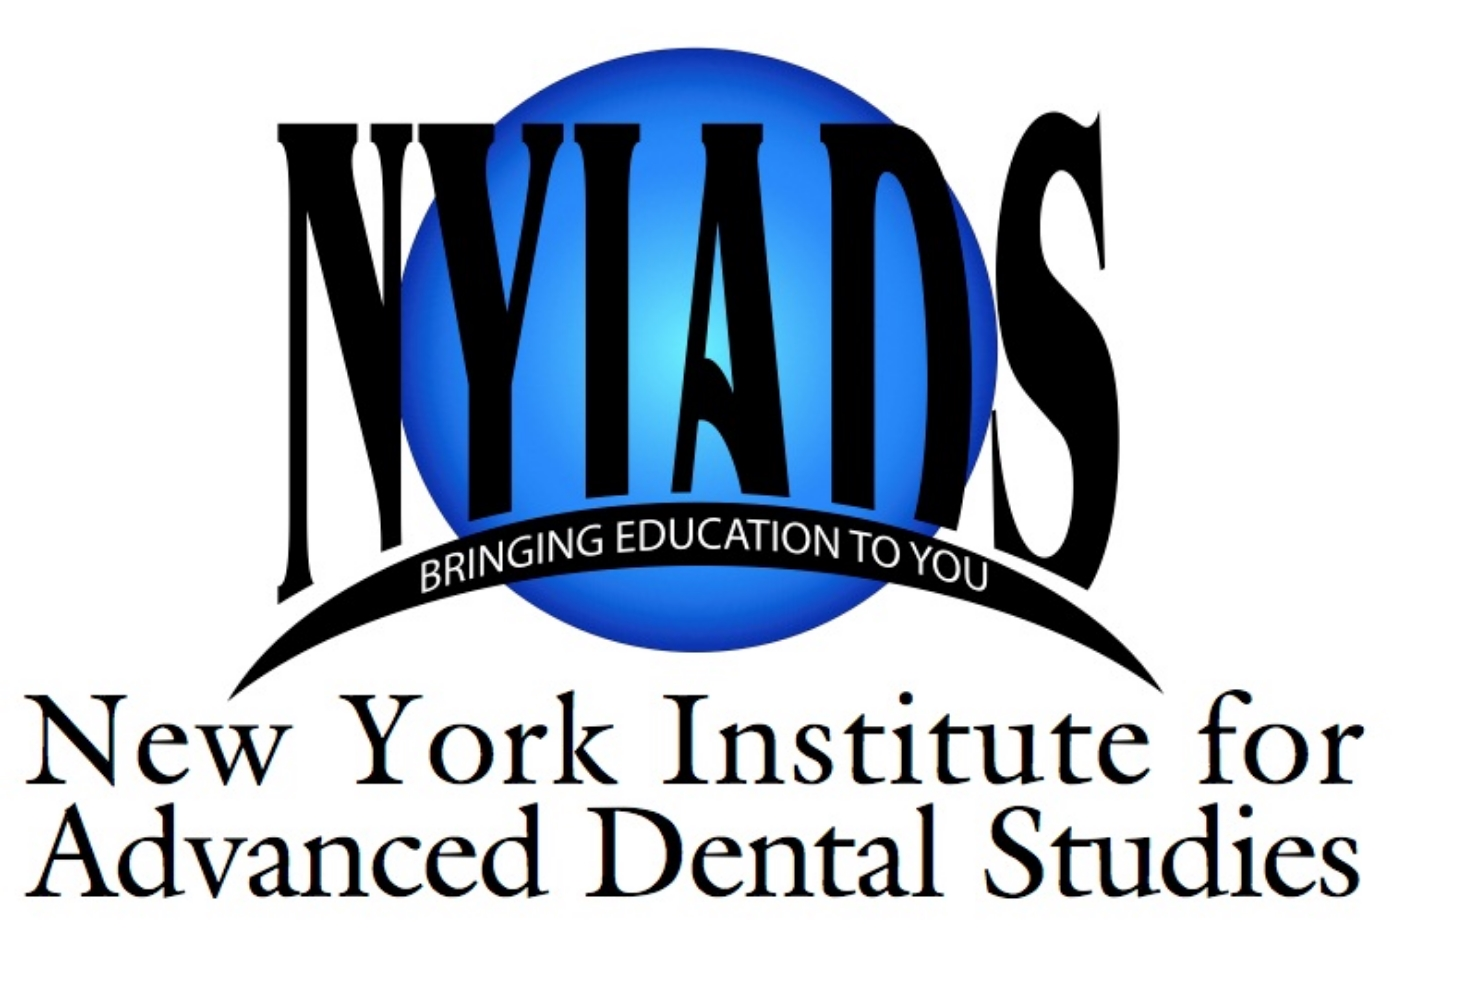 New York Institute for Advanced Dental Studies